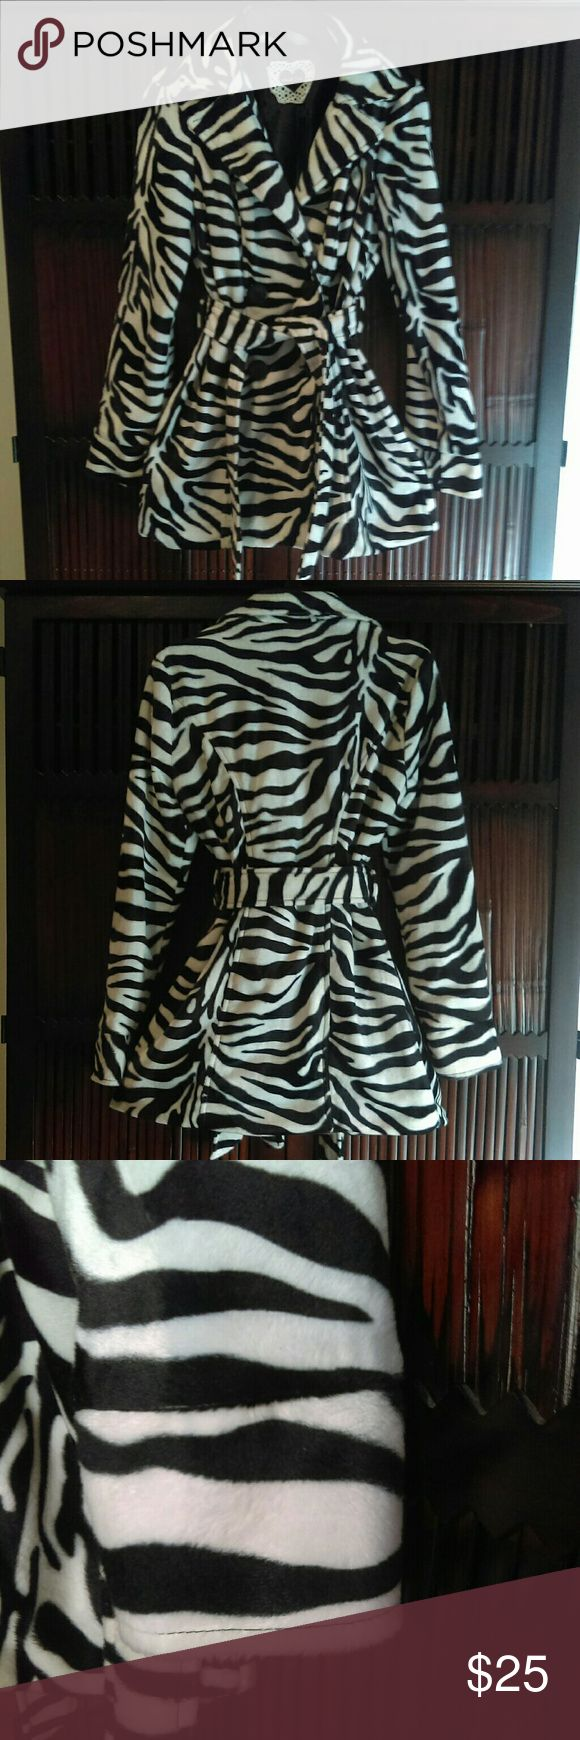 Faux fur zebra print pea coat Never worn perfect condition! Size medium faux fur pea coat with matching belt. Machine washable and dryer safe. Low iron setting okay.  Willing to negotiate price HeartSoul Jackets & Coats